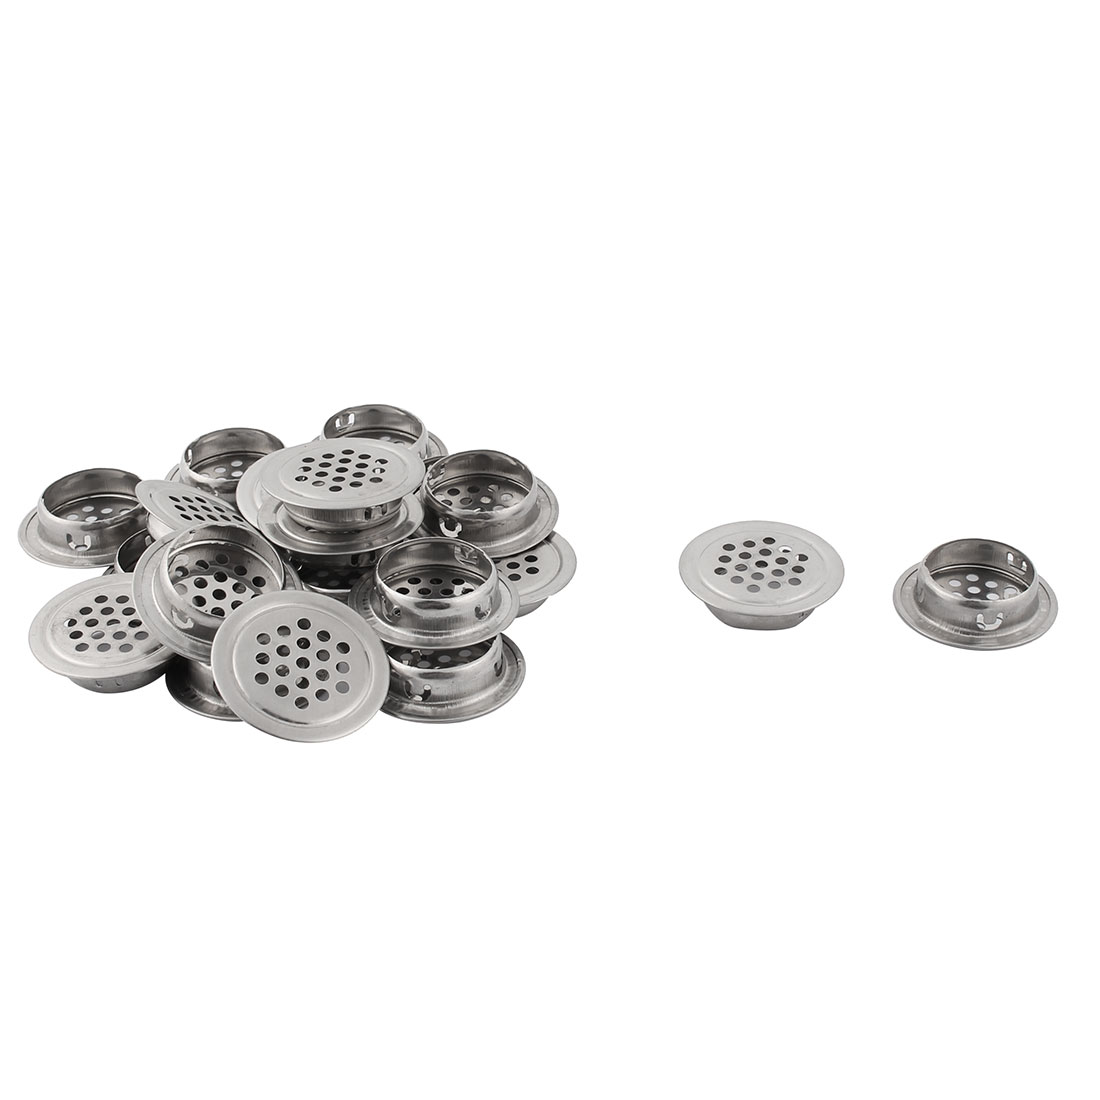 Kitchen Bathroom Stainless Steel Perforated Mesh Air Vents Strainer 29mm Dia 20pcs